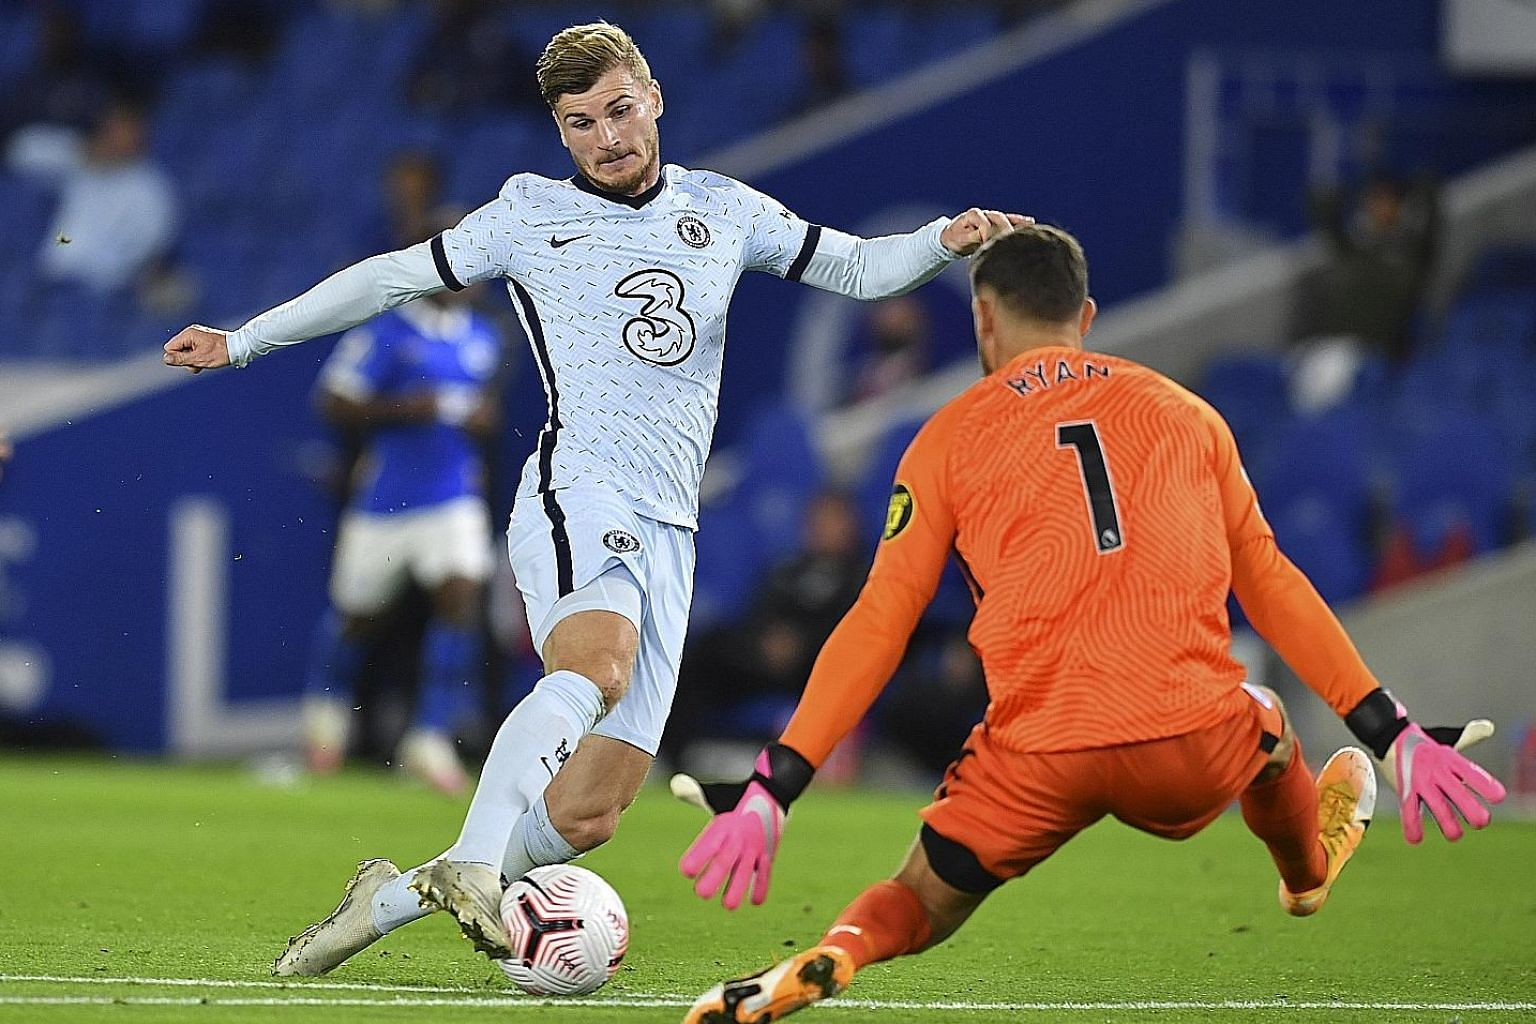 Timo Werner winning Chelsea's spot kick after being brought down by Brighton goalkeeper Mat Ryan. Blues' boss Frank Lampard feels his speed will pose a big threat to rival defences. PHOTO: EPA-EFE